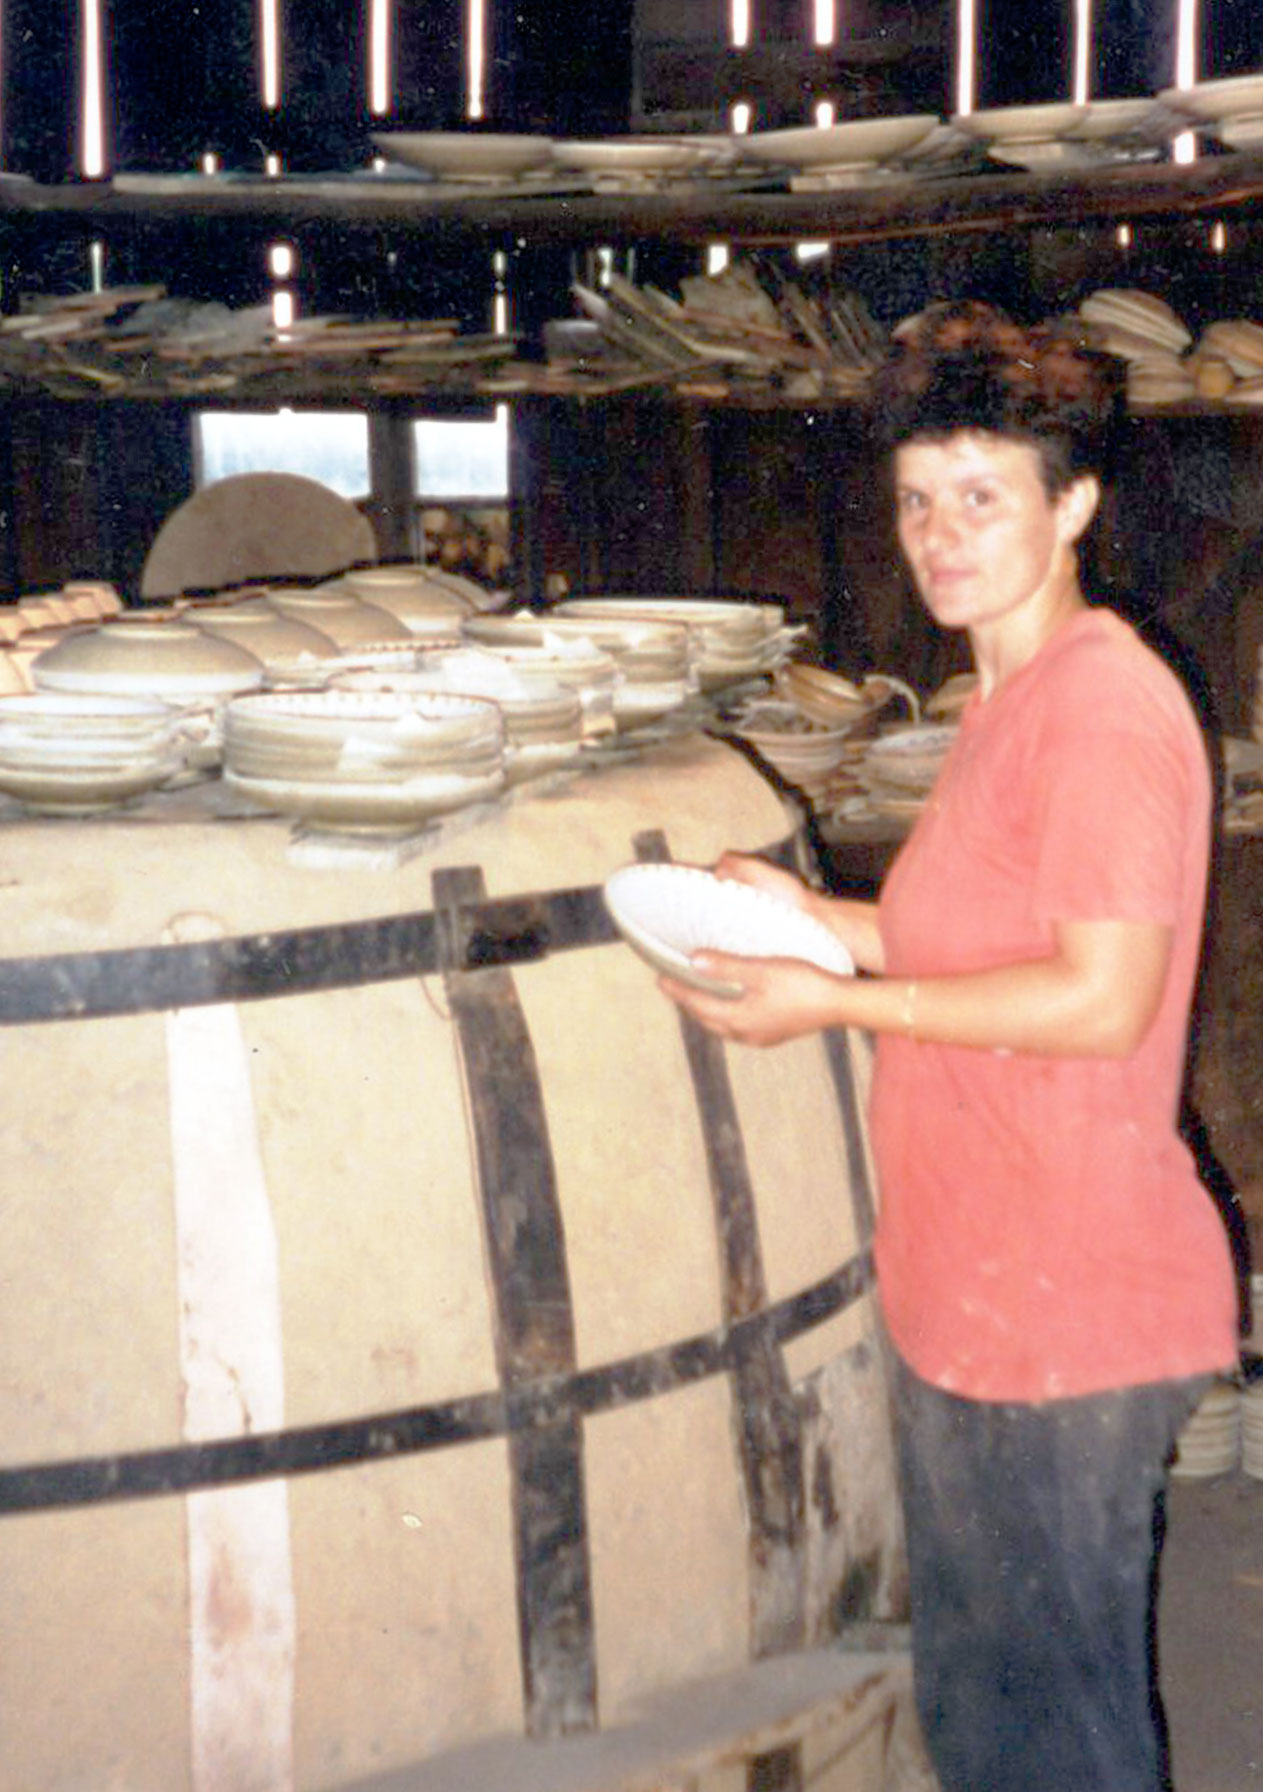 Alina Iorga, 1997, in her kiln building; pots are drying on top of the kiln.